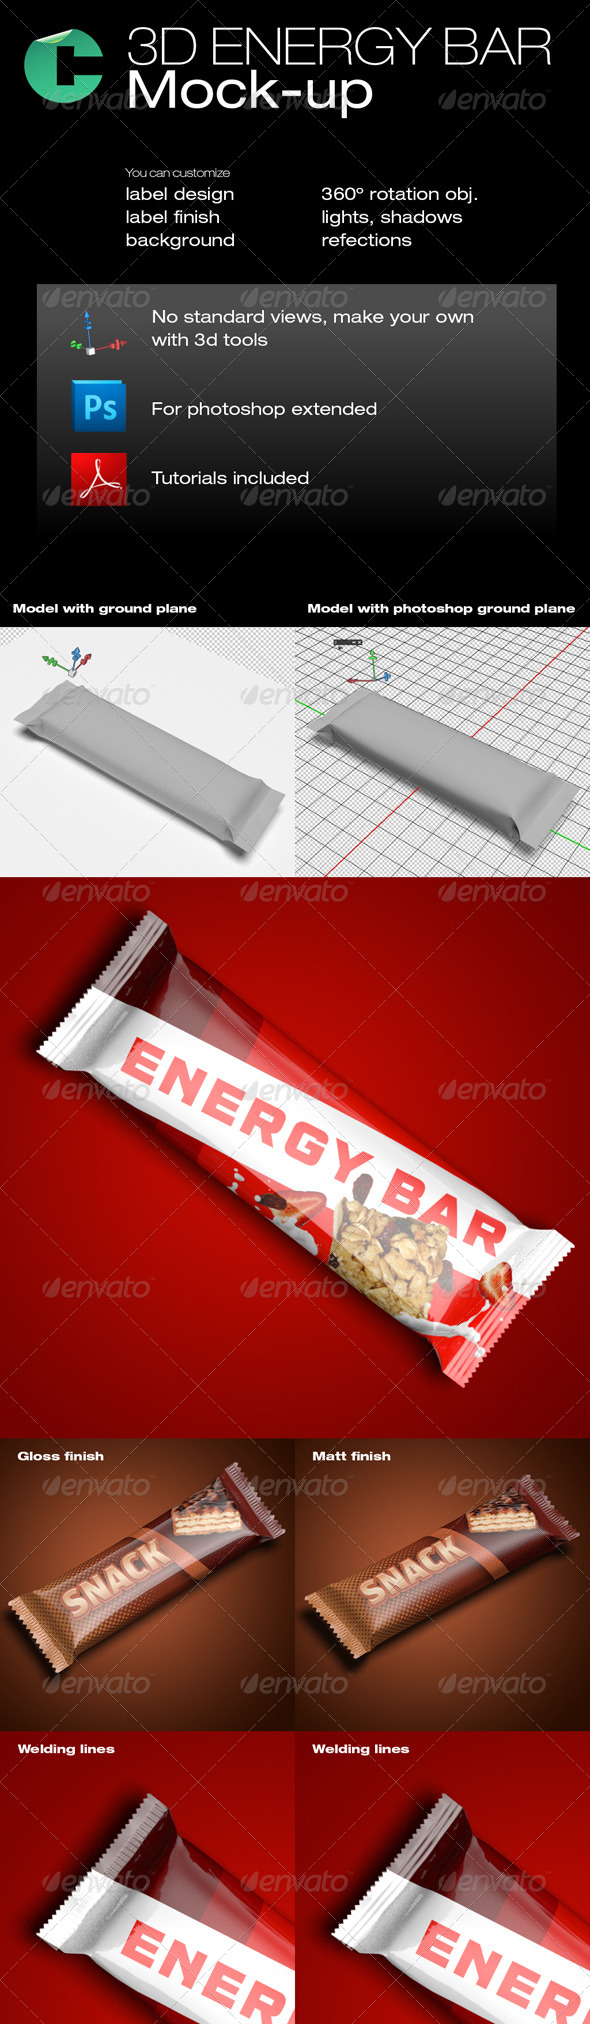 3d object energy bar graphicriver this product is compatible 3d object energy bar graphicriver this product is compatible with adobe photoshop cs4 extended and cs5 extended pdf tutorial include pinteres baditri Images